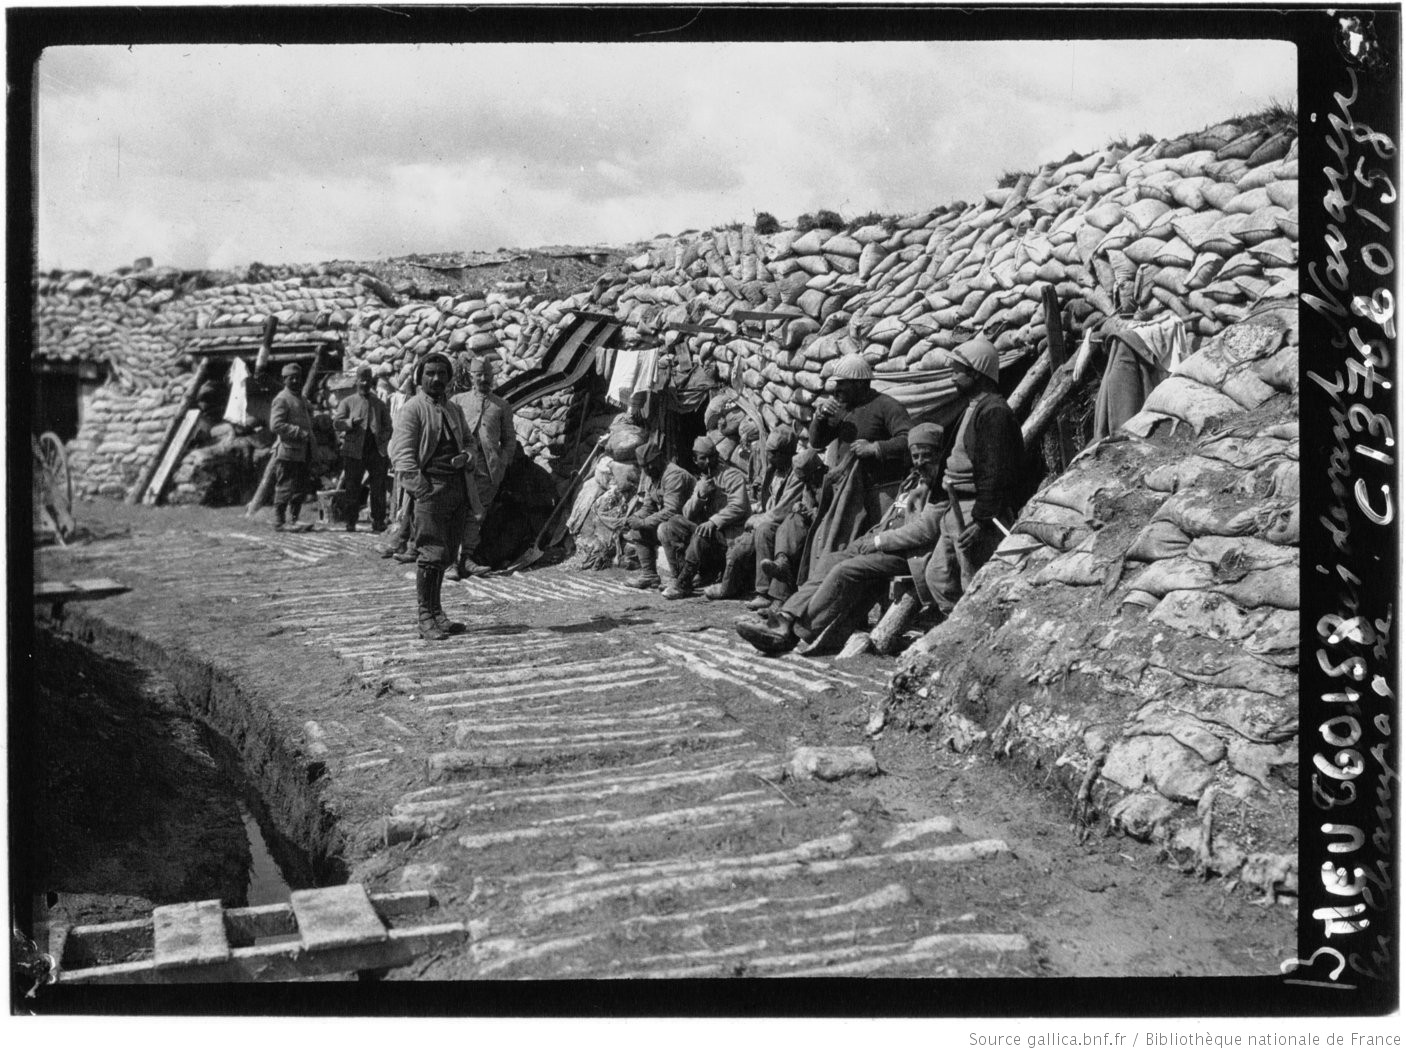 In the trenches in front of Navarin Farm in the Champagne, May 1916. #WW1 #1GM #Poilu https://t.co/vGeiDEAFhD